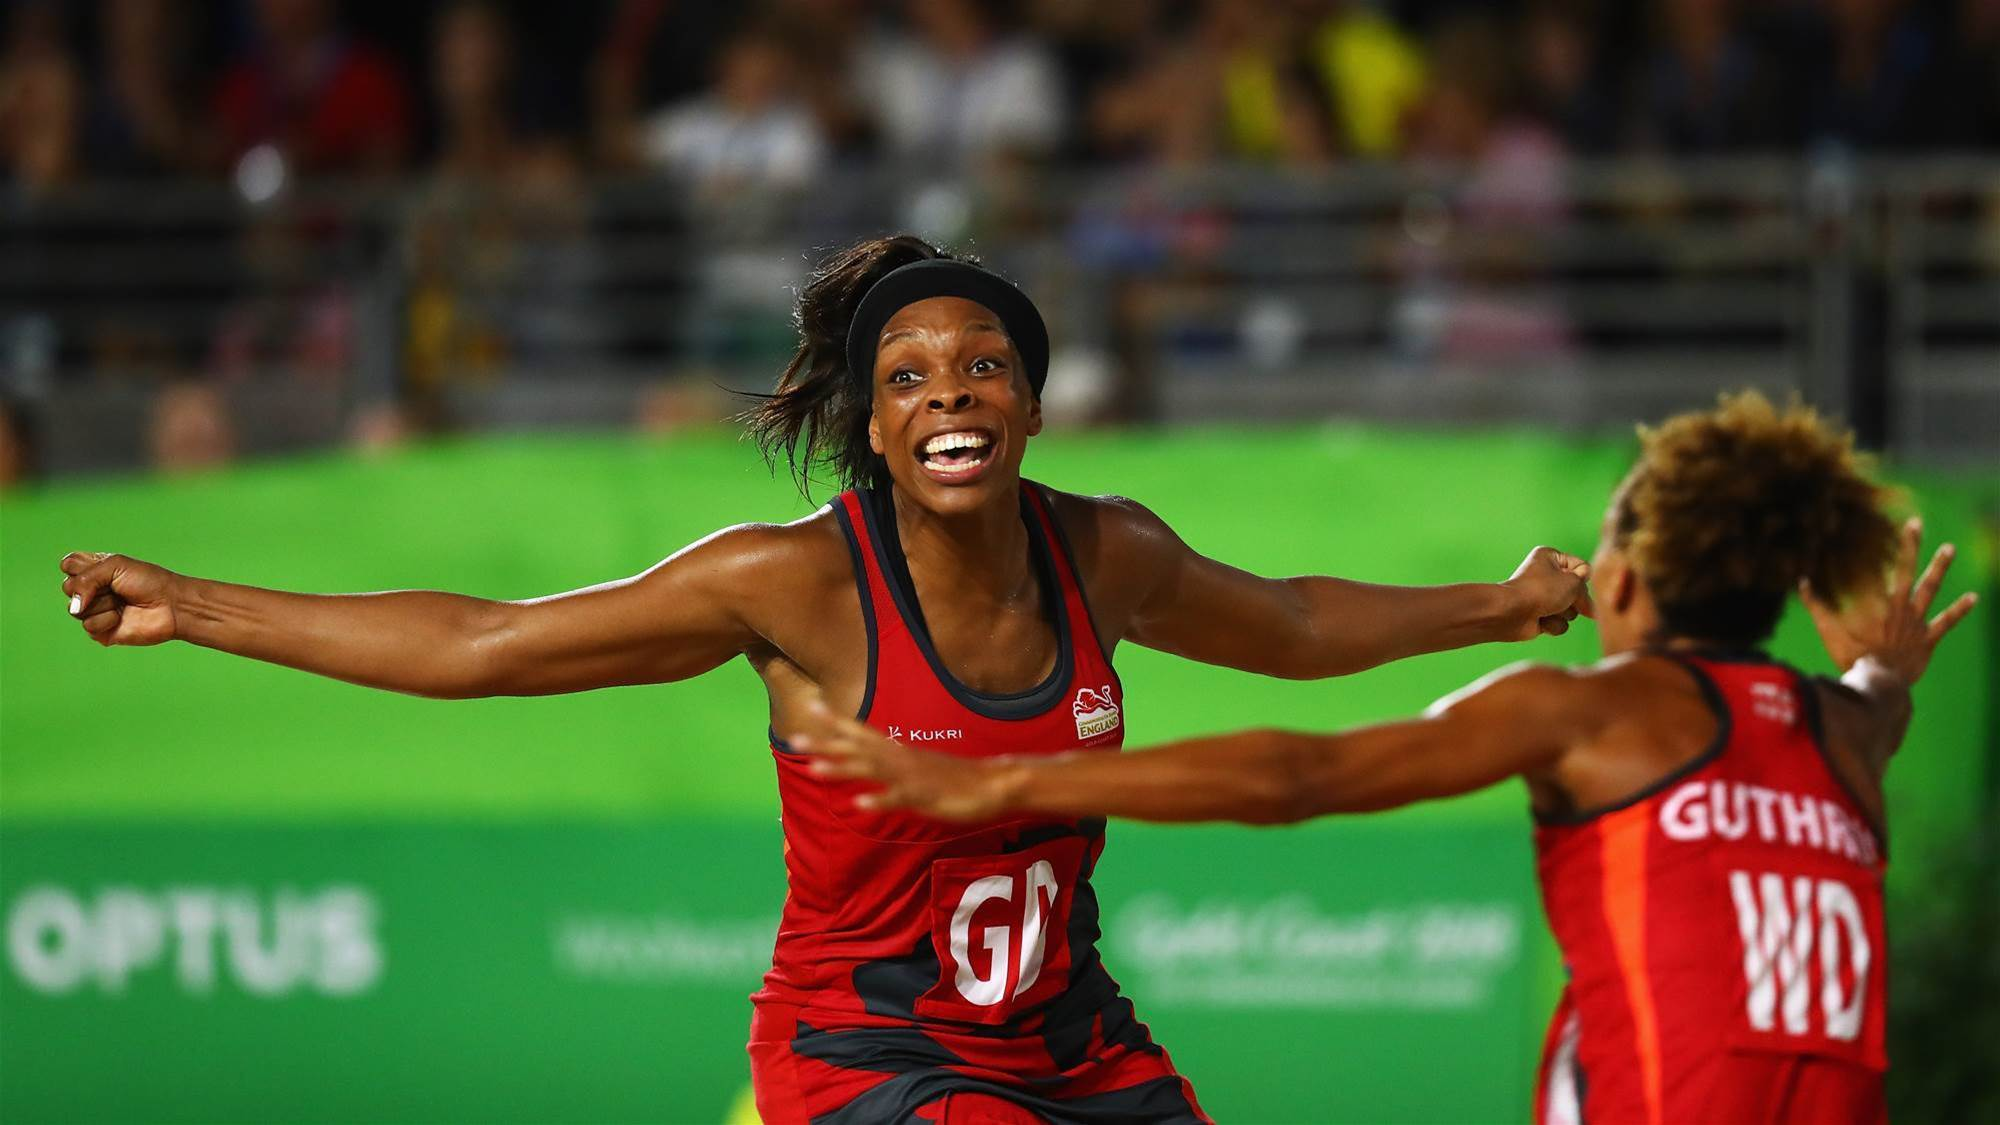 GALLERY| Commonwealth Games Day 10